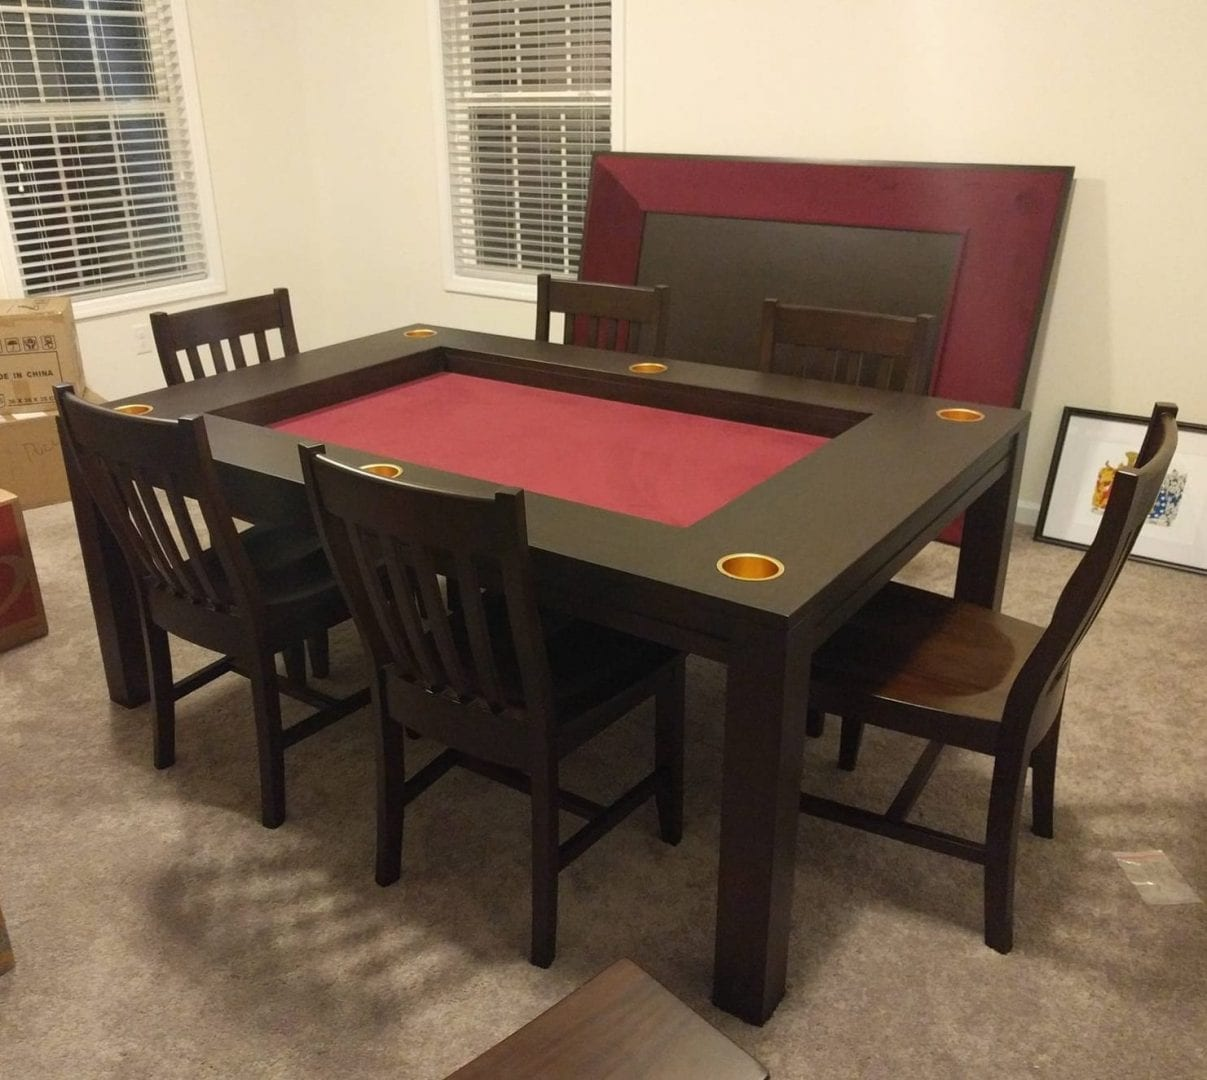 Dining game table one table for everyday dining and game for 11 in 1 game table